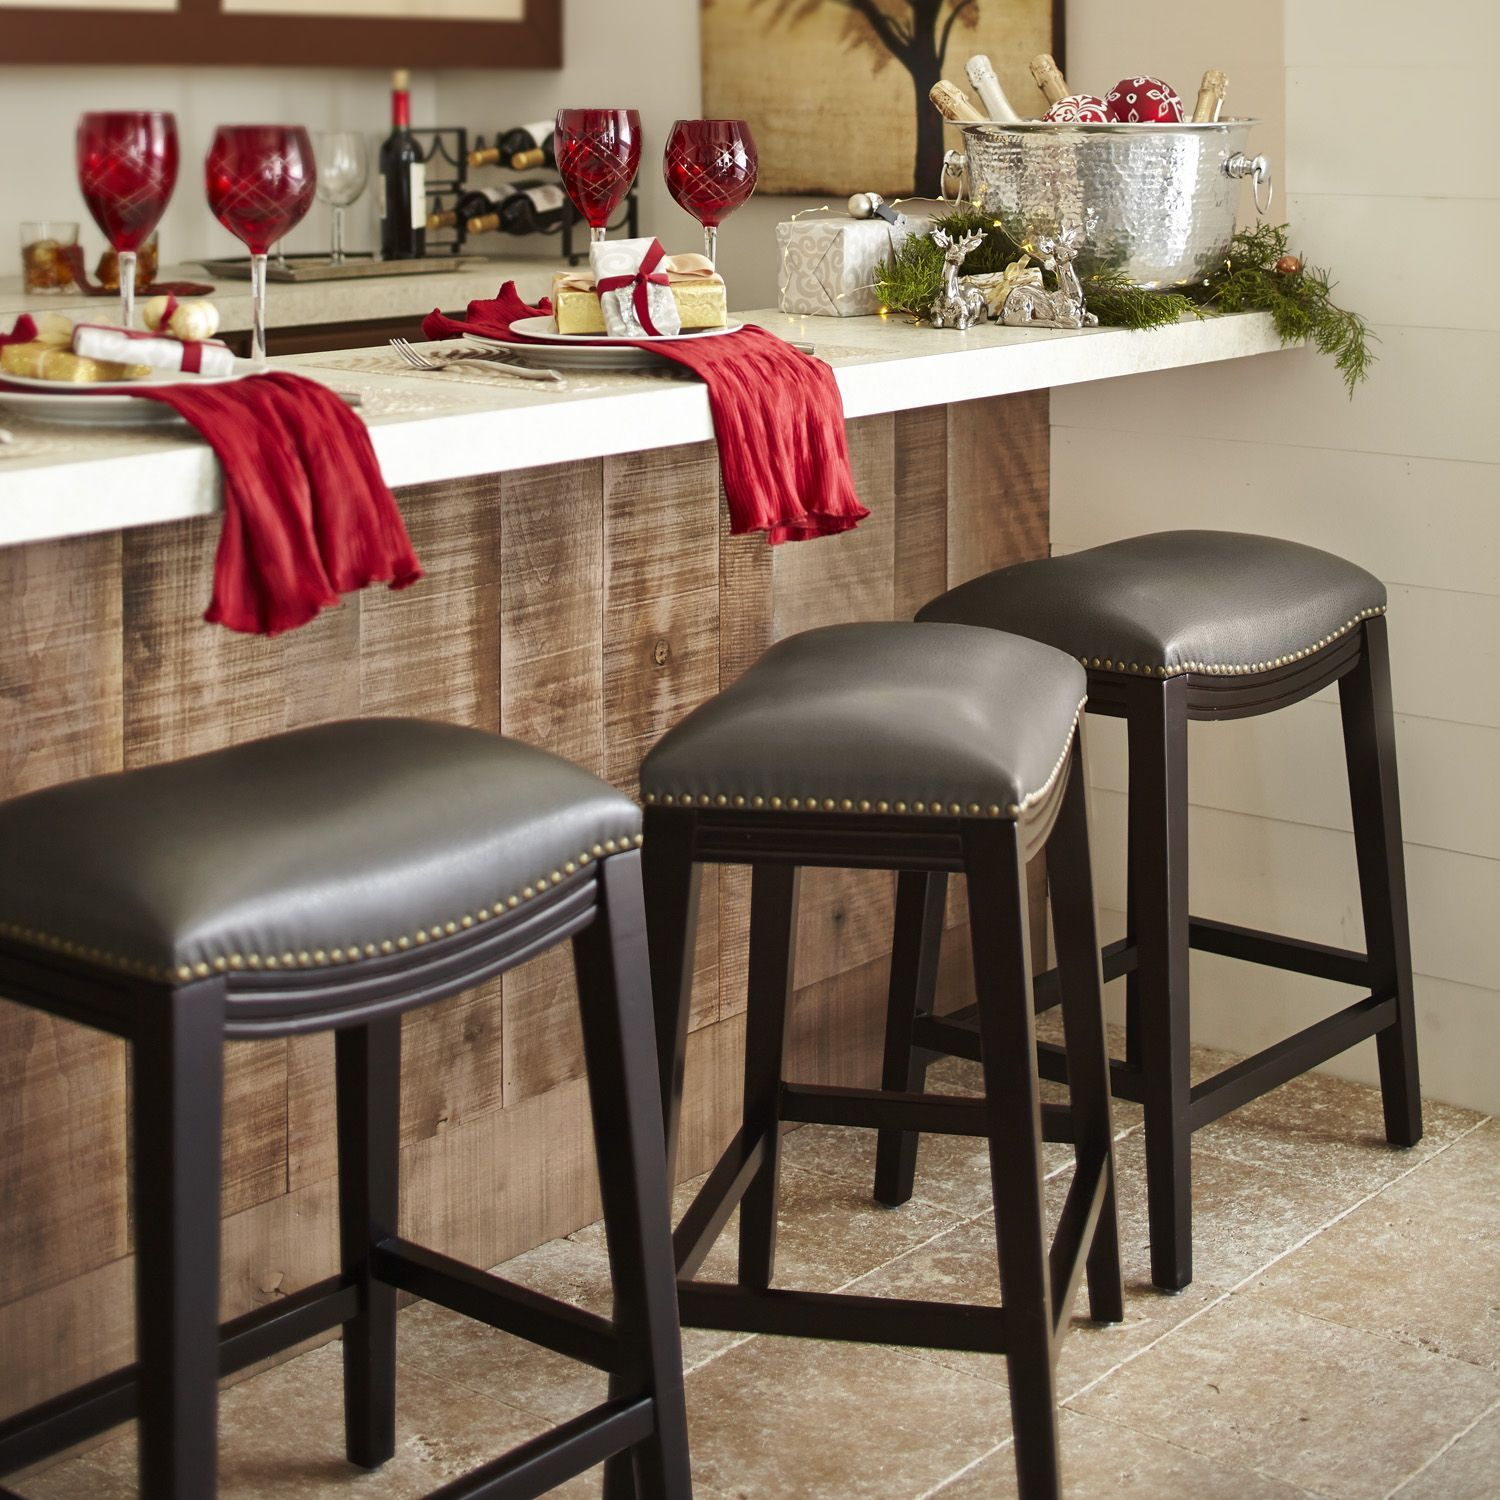 Campbell Carved Backless Bar Stool 30 H Seat Frontgate Counter Stools Backless Bar Stools Counter Stools